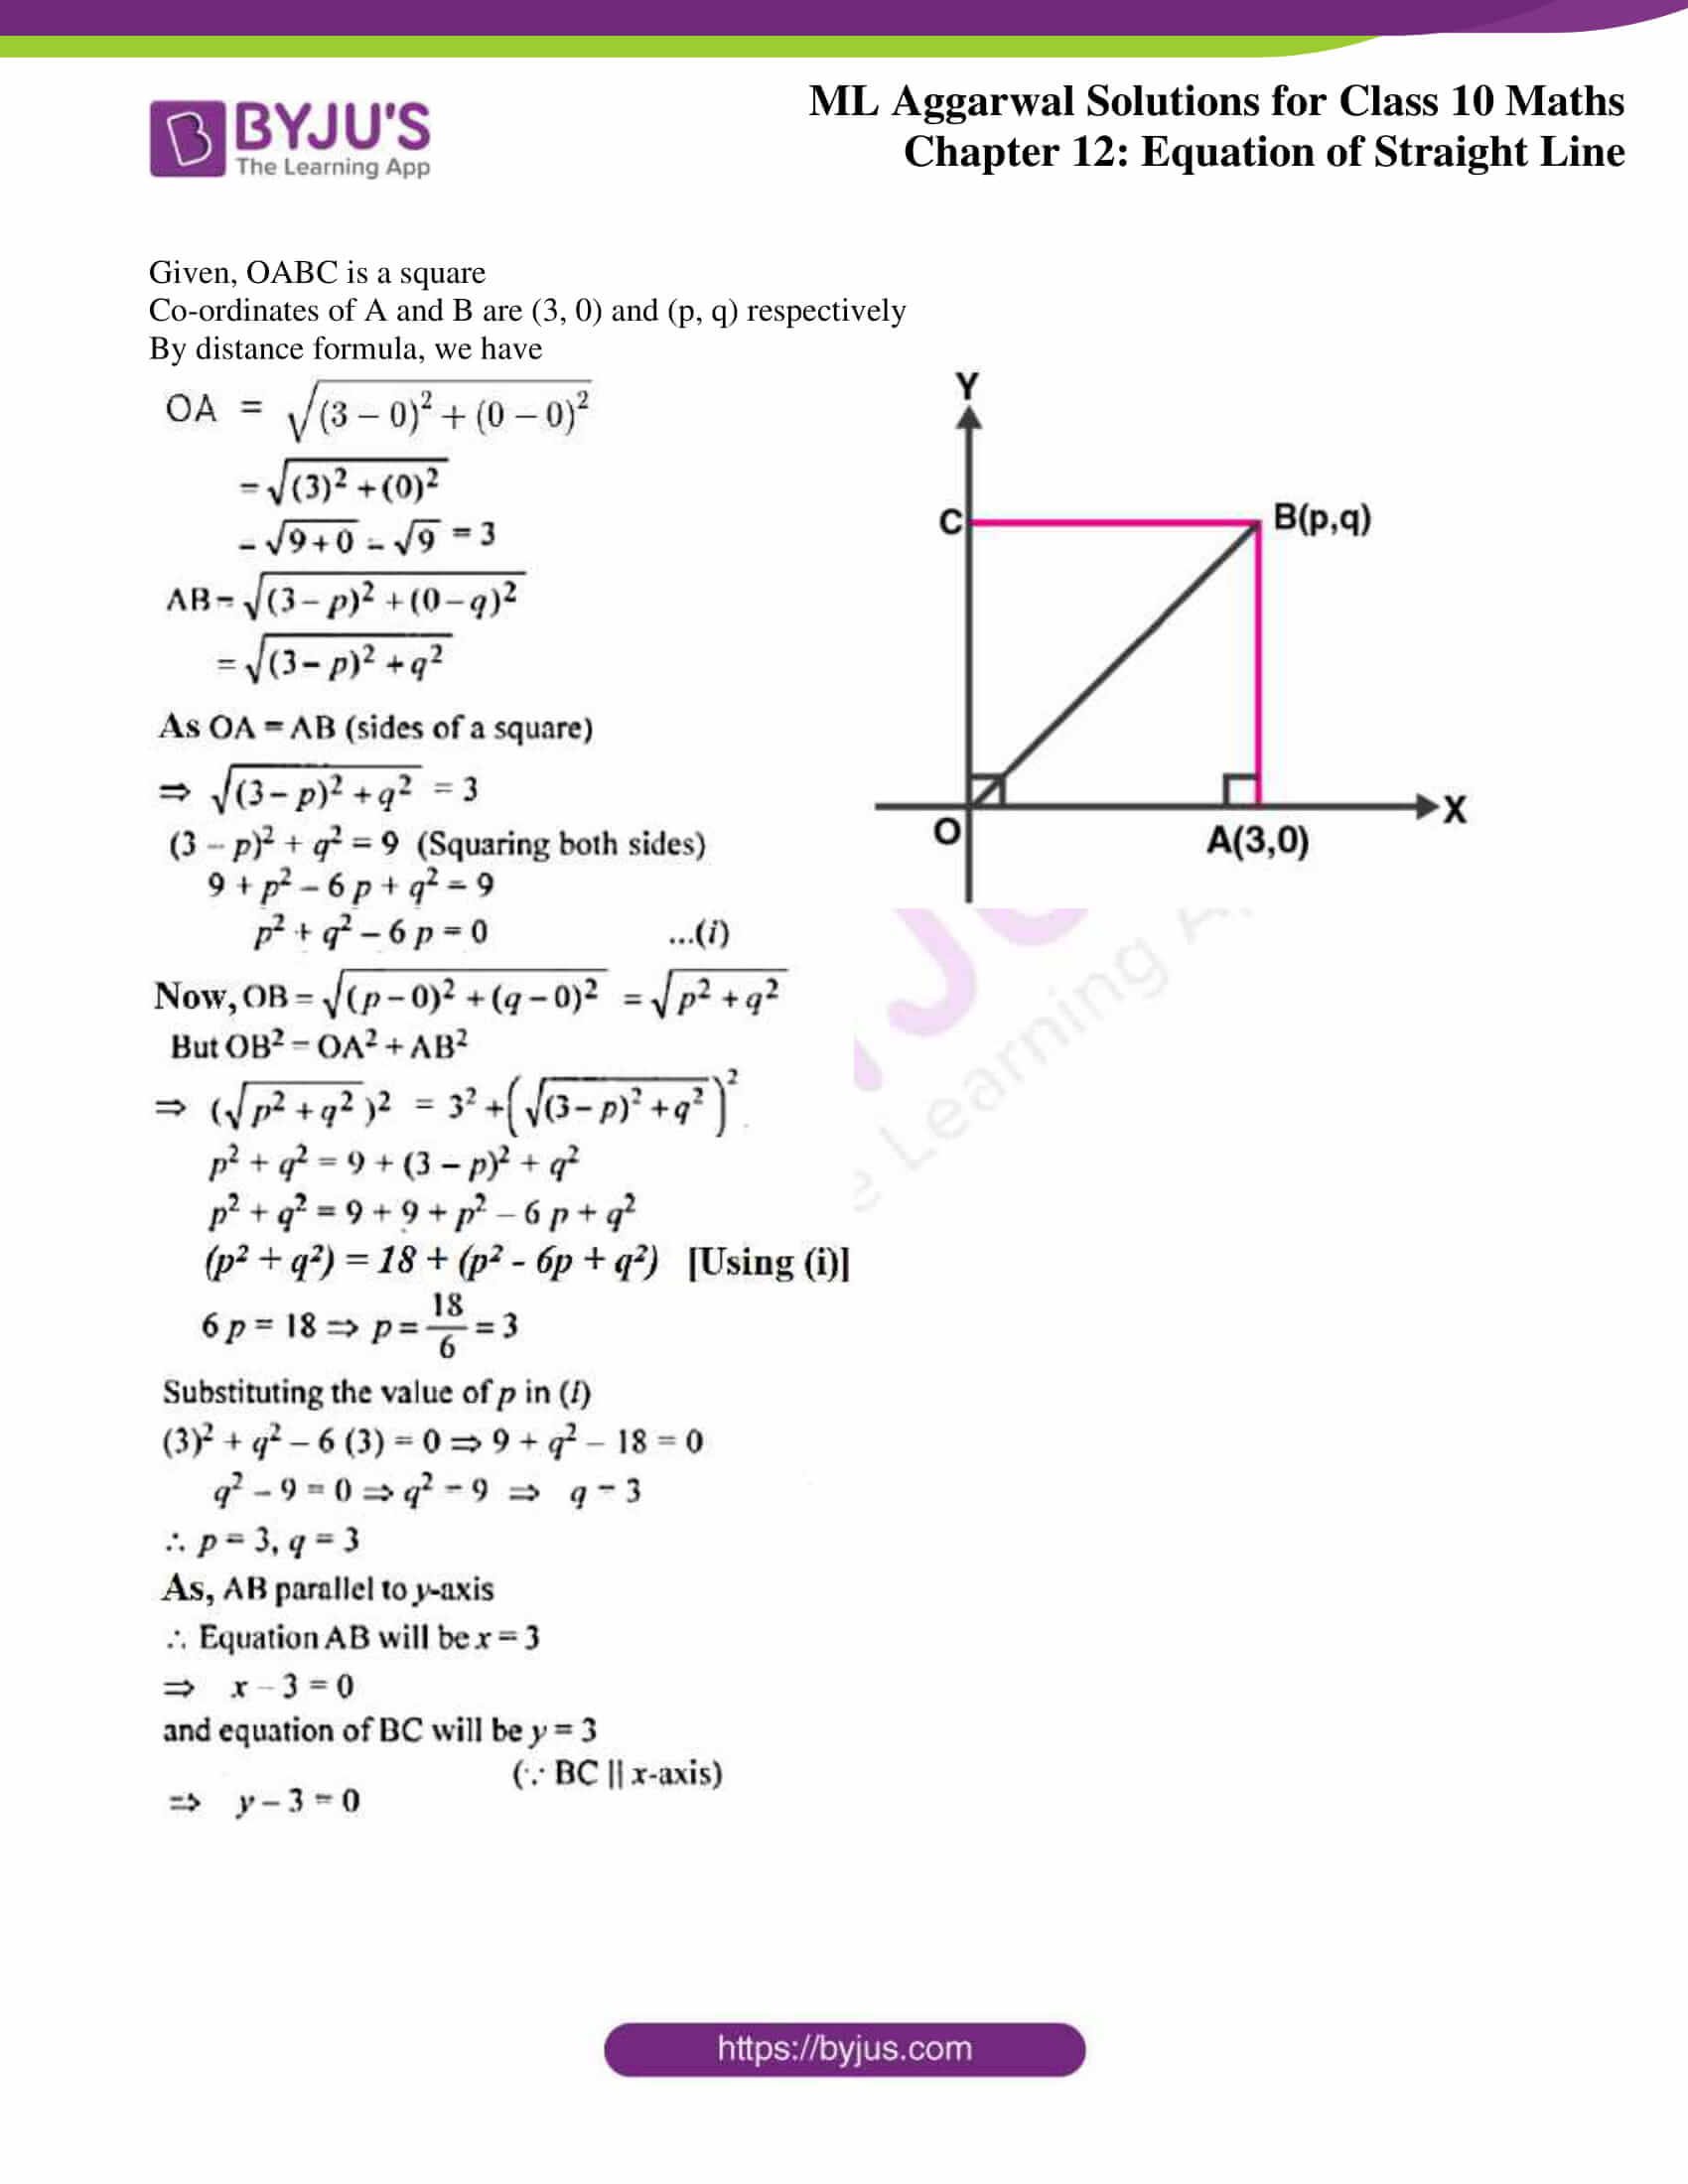 ml aggarwal solutions for class 10 maths chapter 12 35